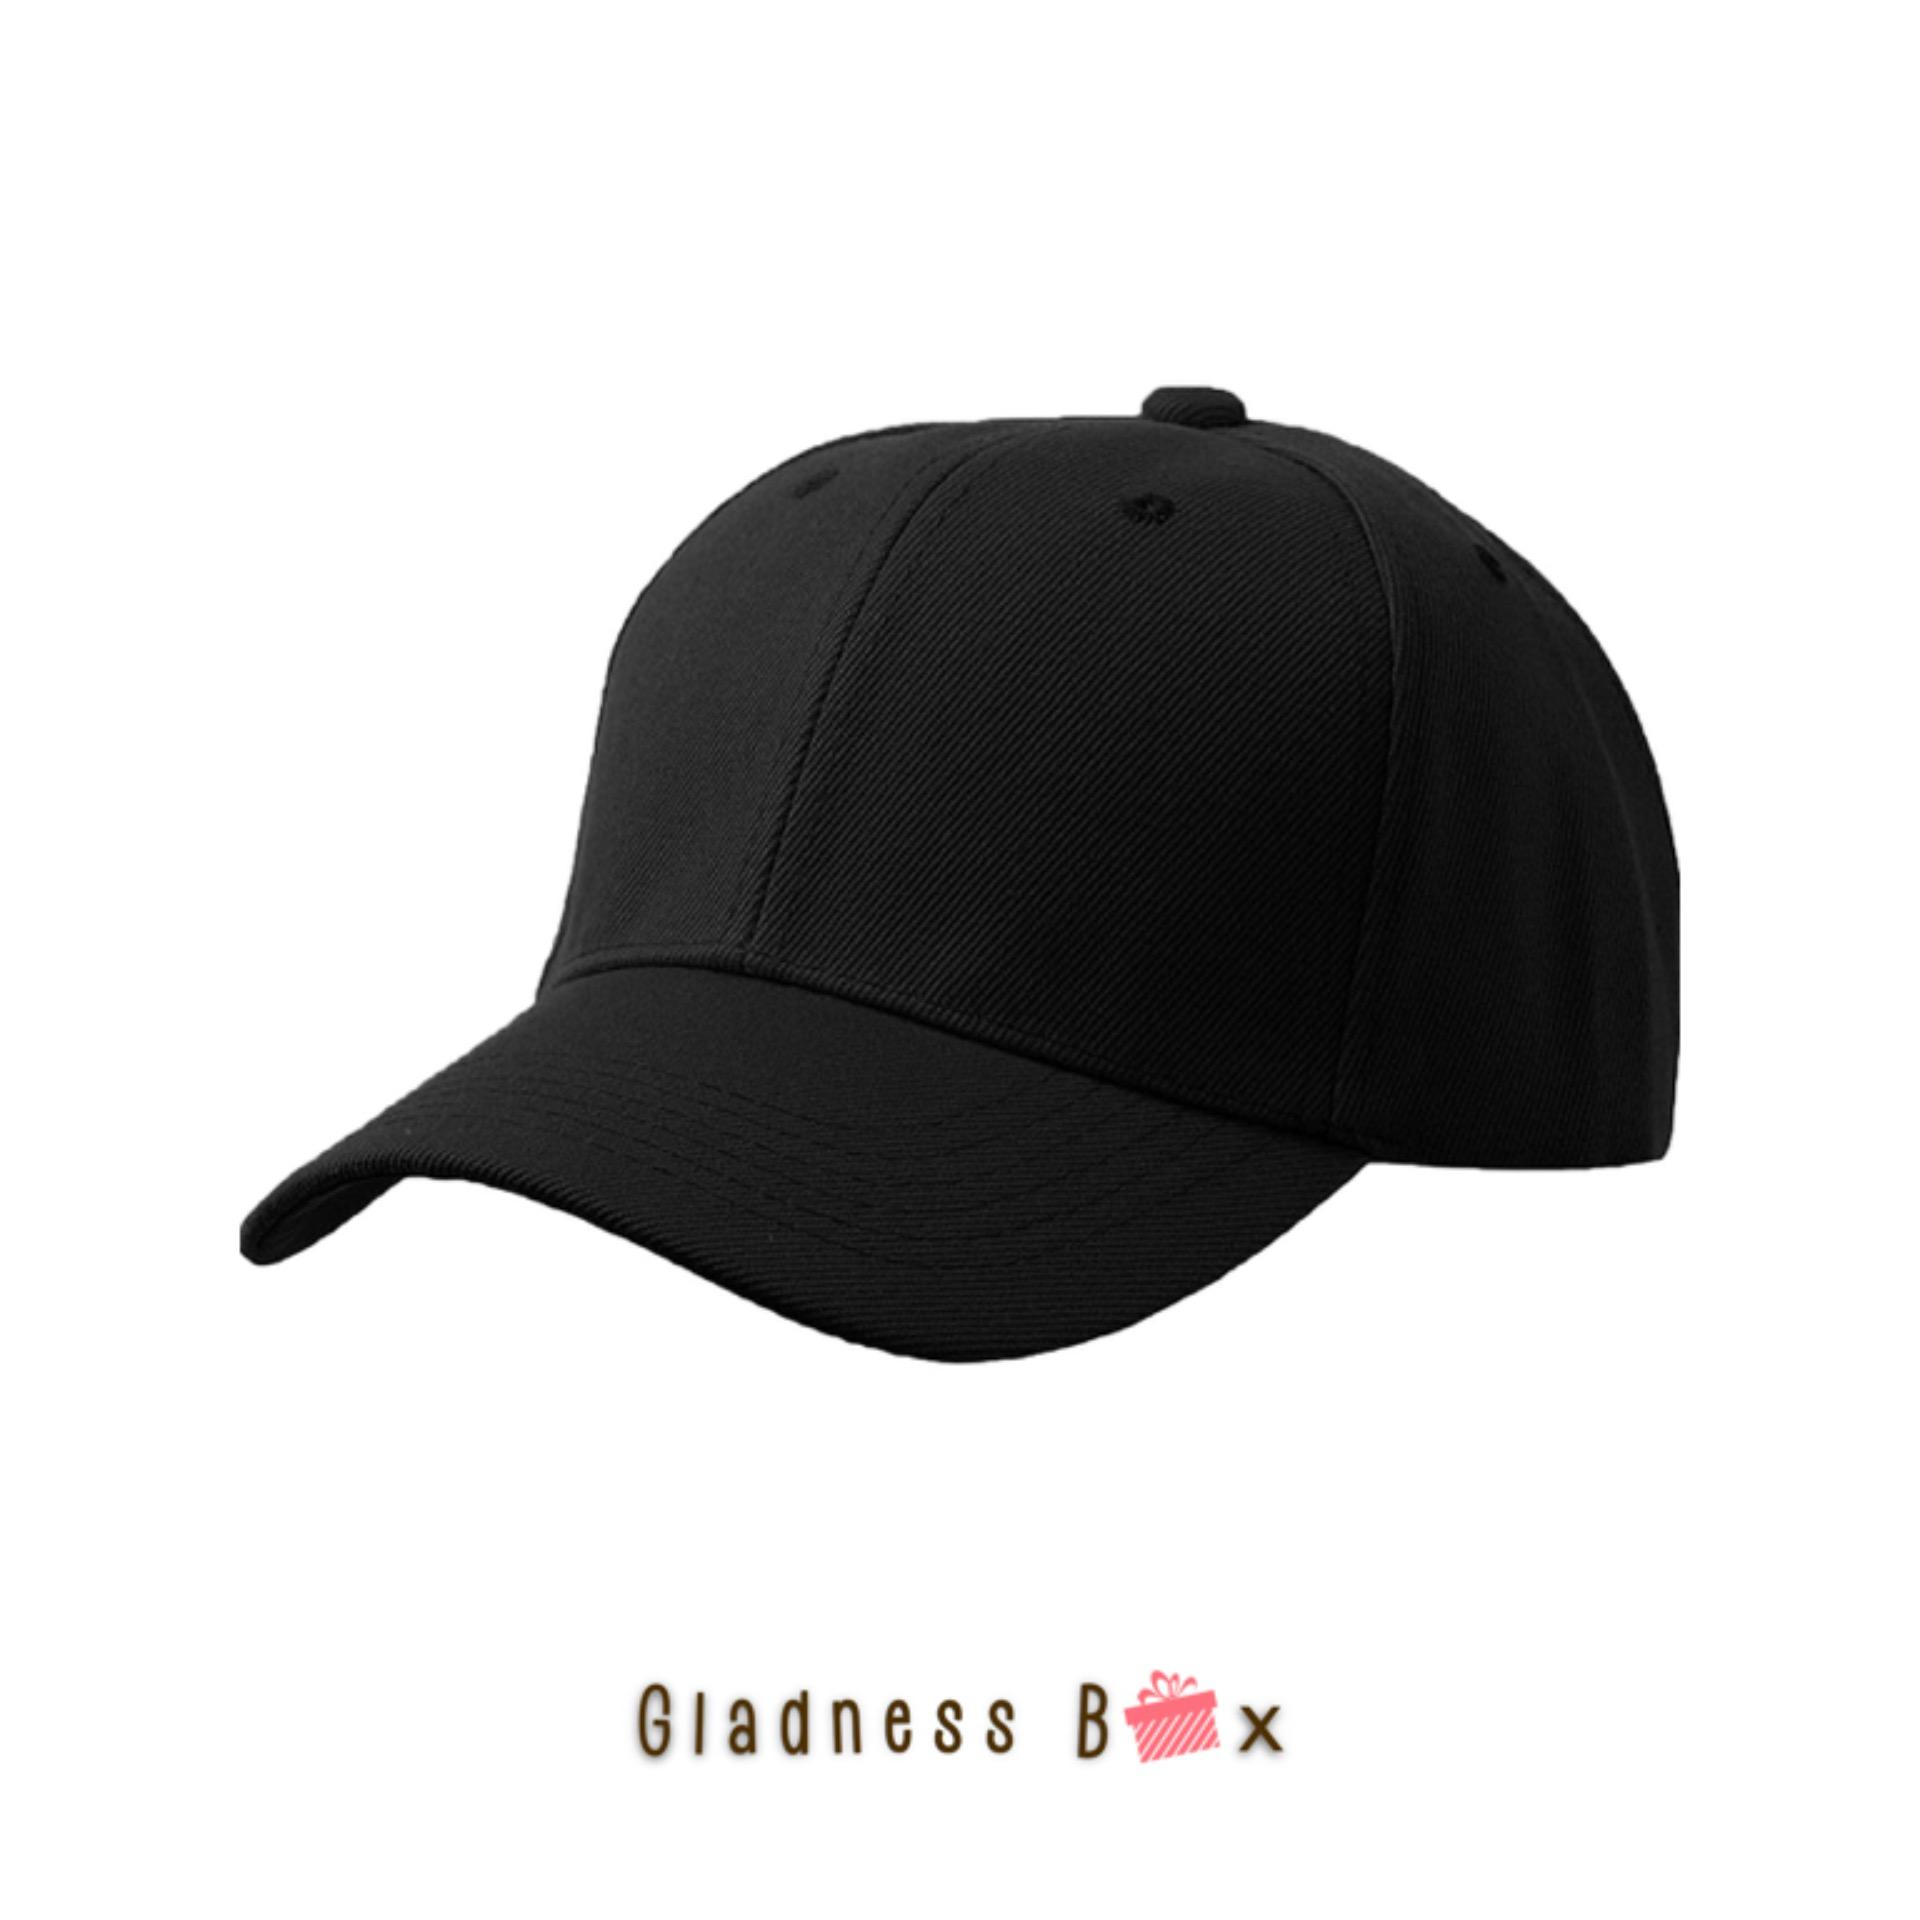 e261ff727e8b4 Gladness Box High Quality Plain Baseball Cap for Men Women Unisex